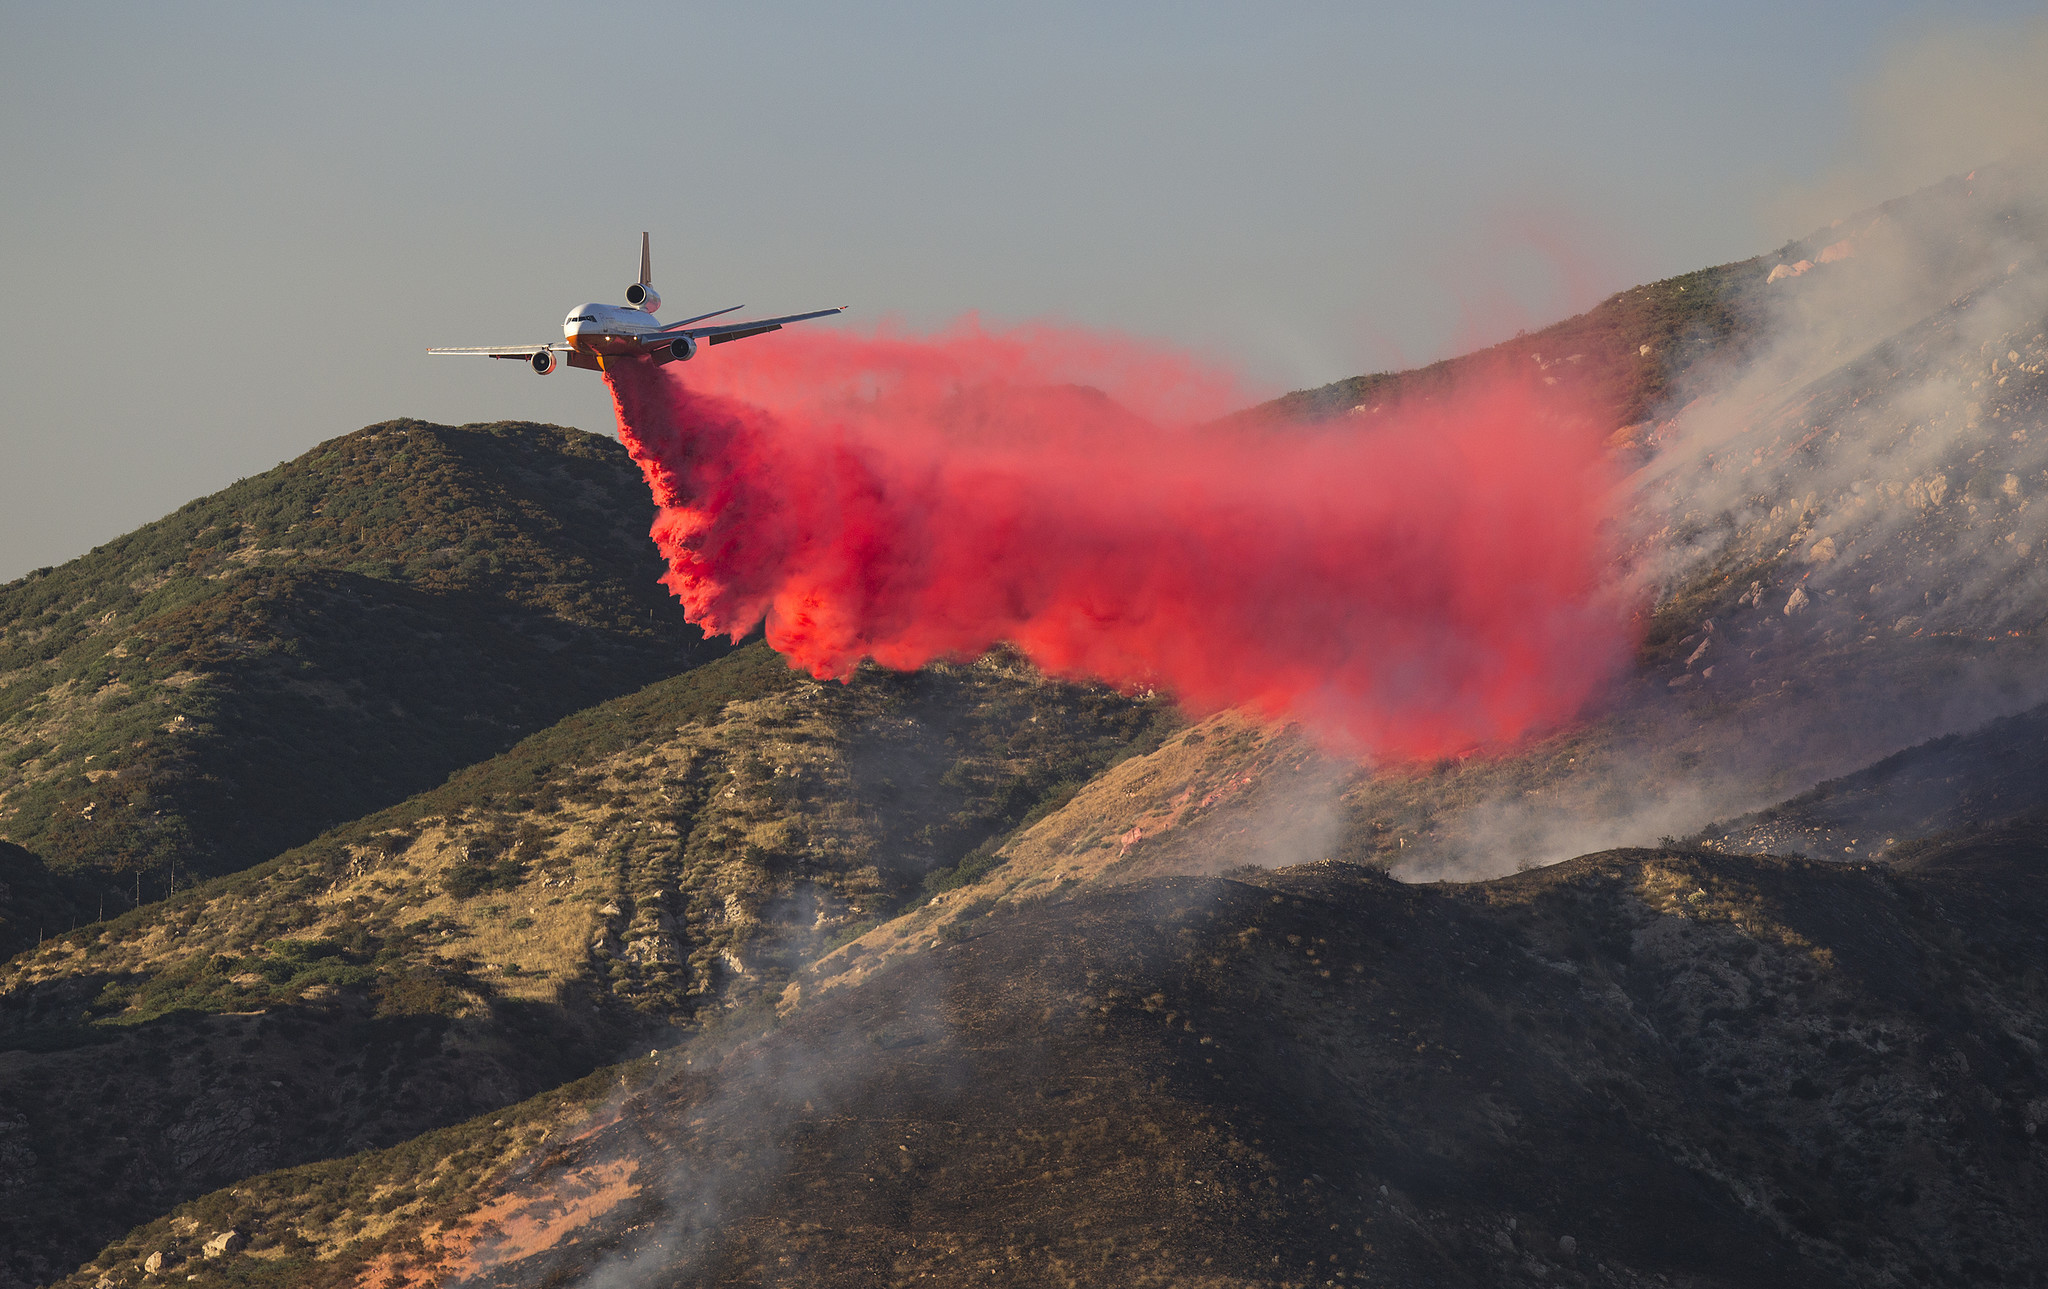 A plane drops fire retardant on the hillsides to battle the Mart fire  near Highway 330 on June 27, 2017 in Highland, California.